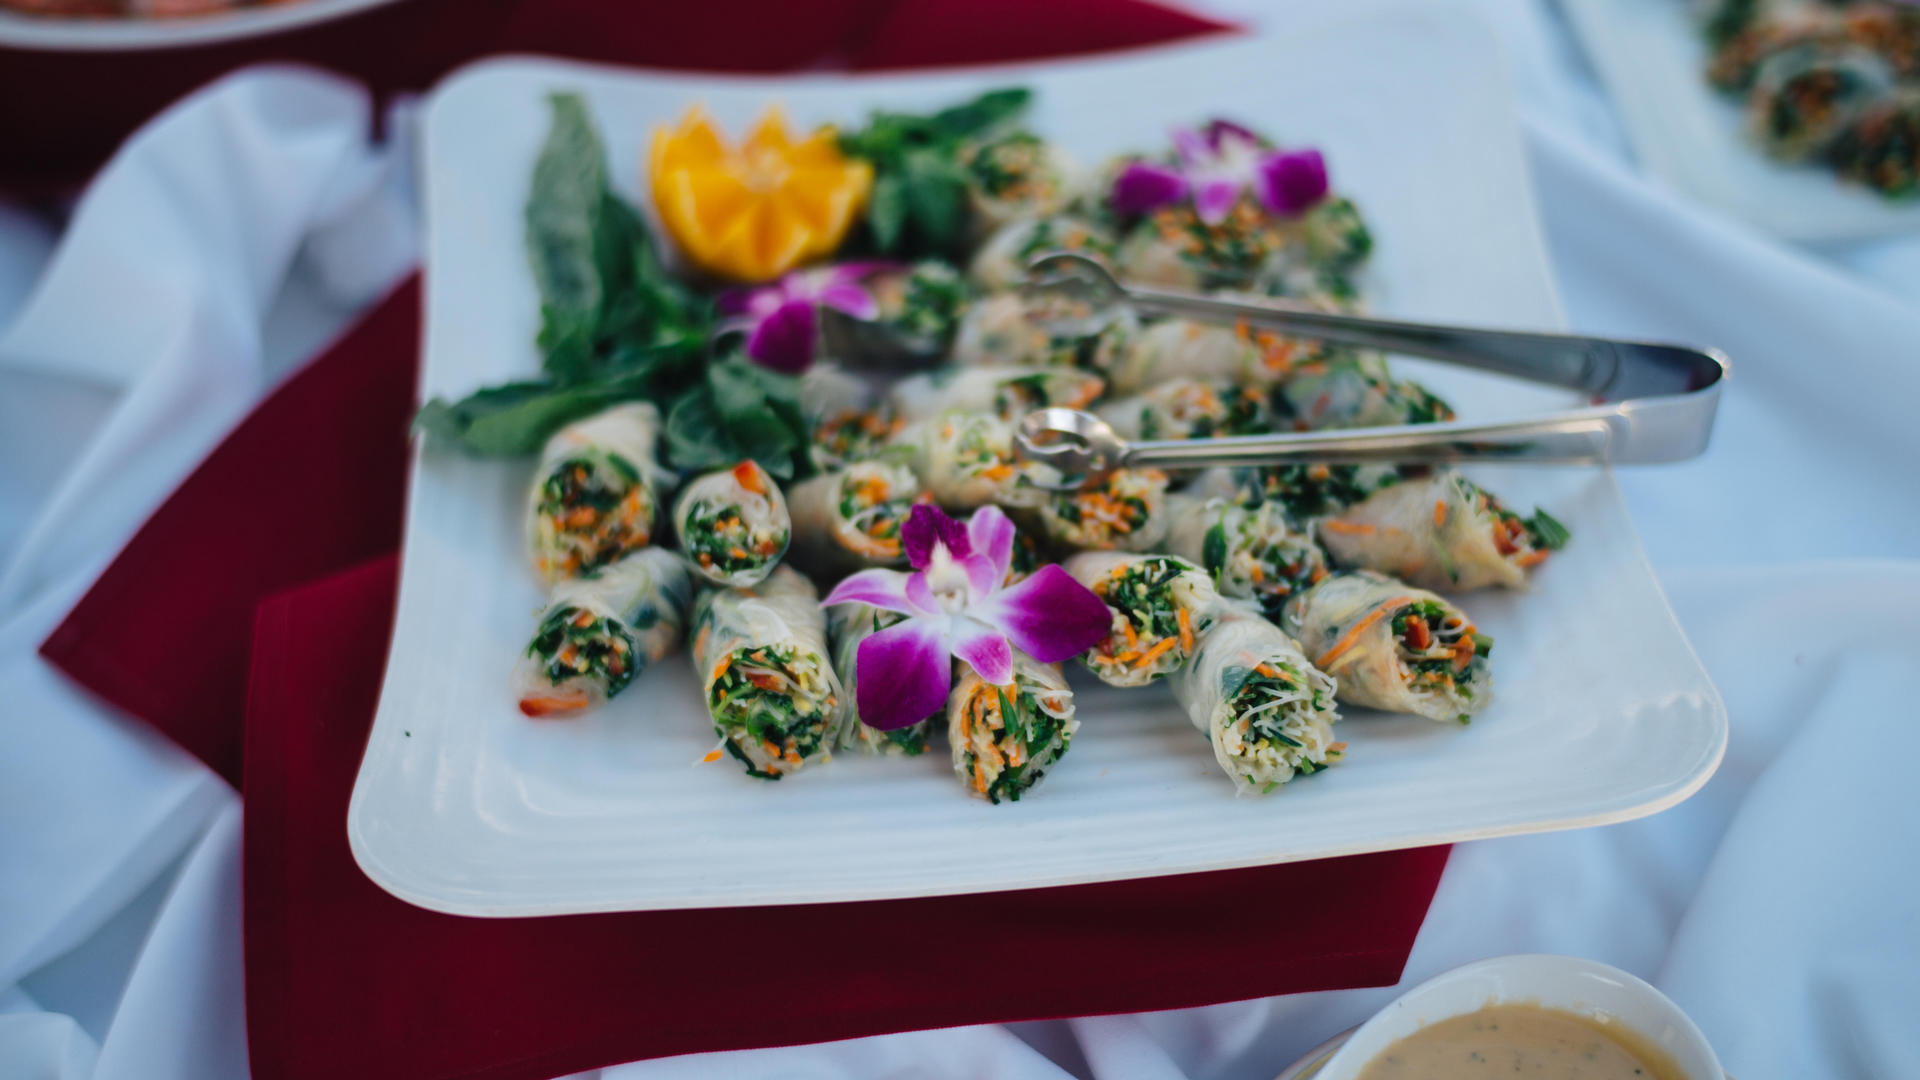 Wedding Menus at Chaminade Resort & Spa in Santa Cruz, CA